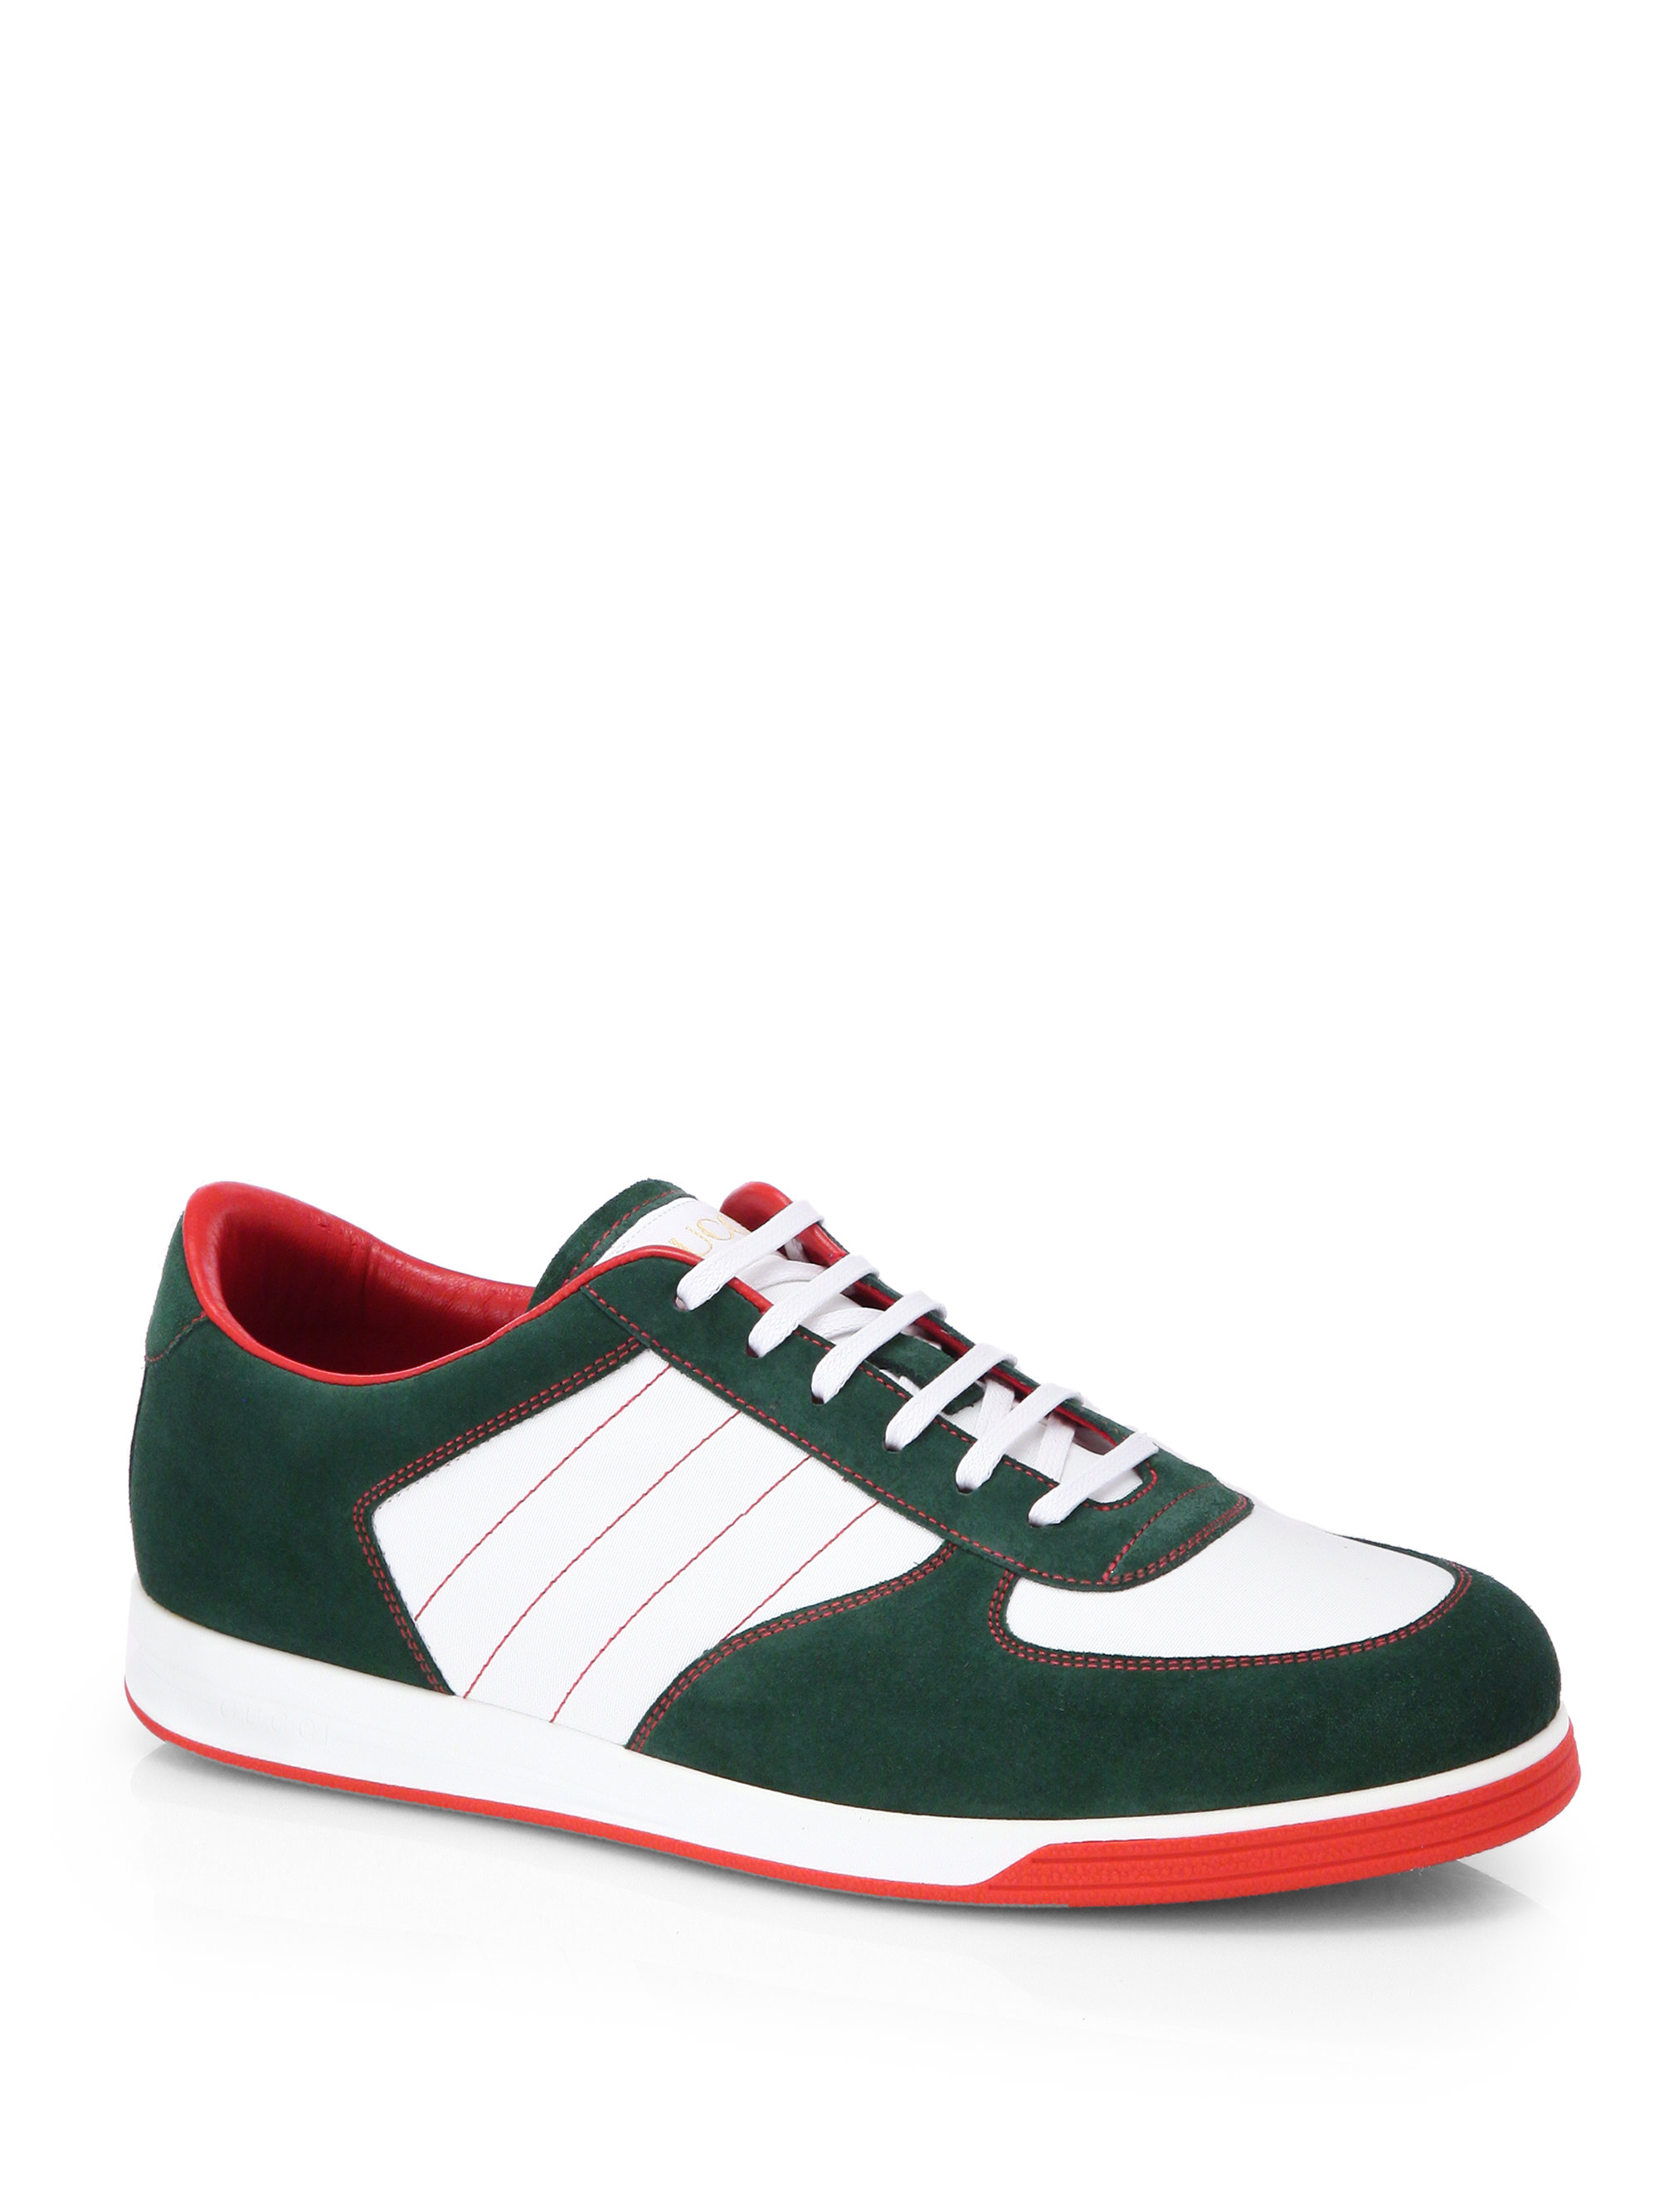 gucci suede anniversary sneakers in green for men lyst. Black Bedroom Furniture Sets. Home Design Ideas